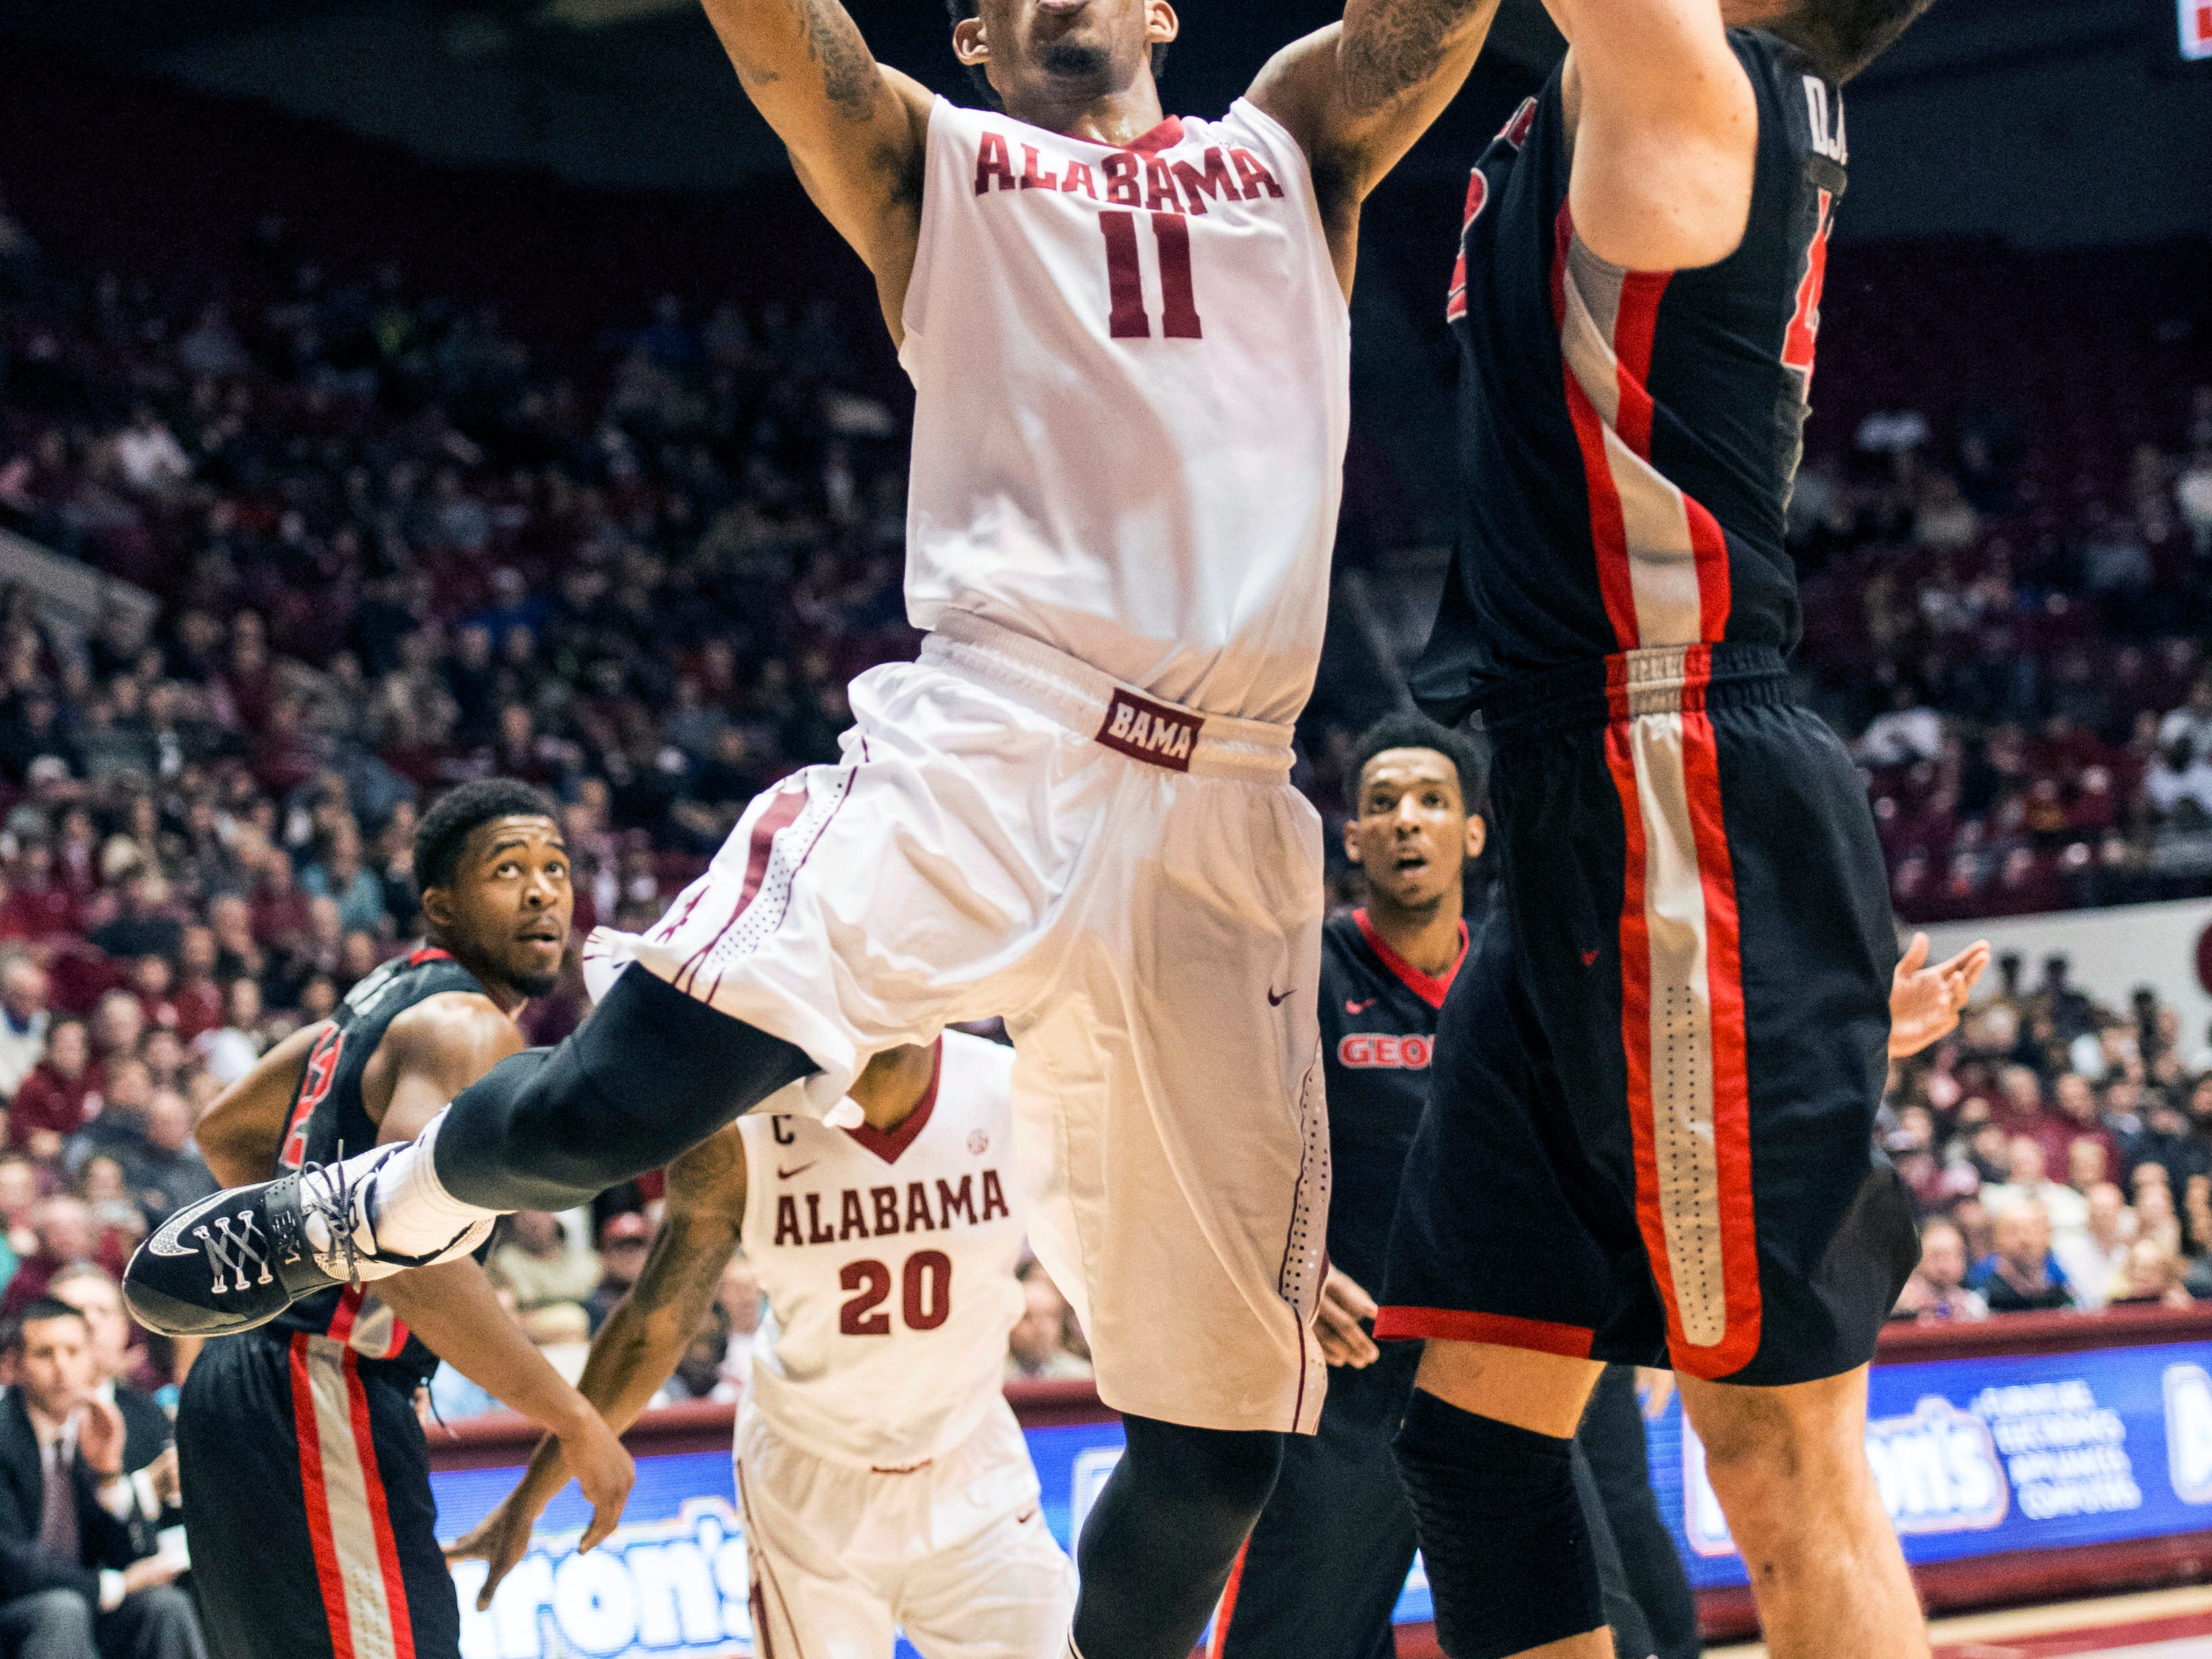 Alabama forward Shannon Hale (11) pushes the ball to the basket against Georgia during an NCAA college basketball game, Saturday, Feb. 21, 2015, at Coleman Coliseum in Tuscaloosa, Ala. (AP Photo/AL.com, Vasha Hunt) MAGS OUT